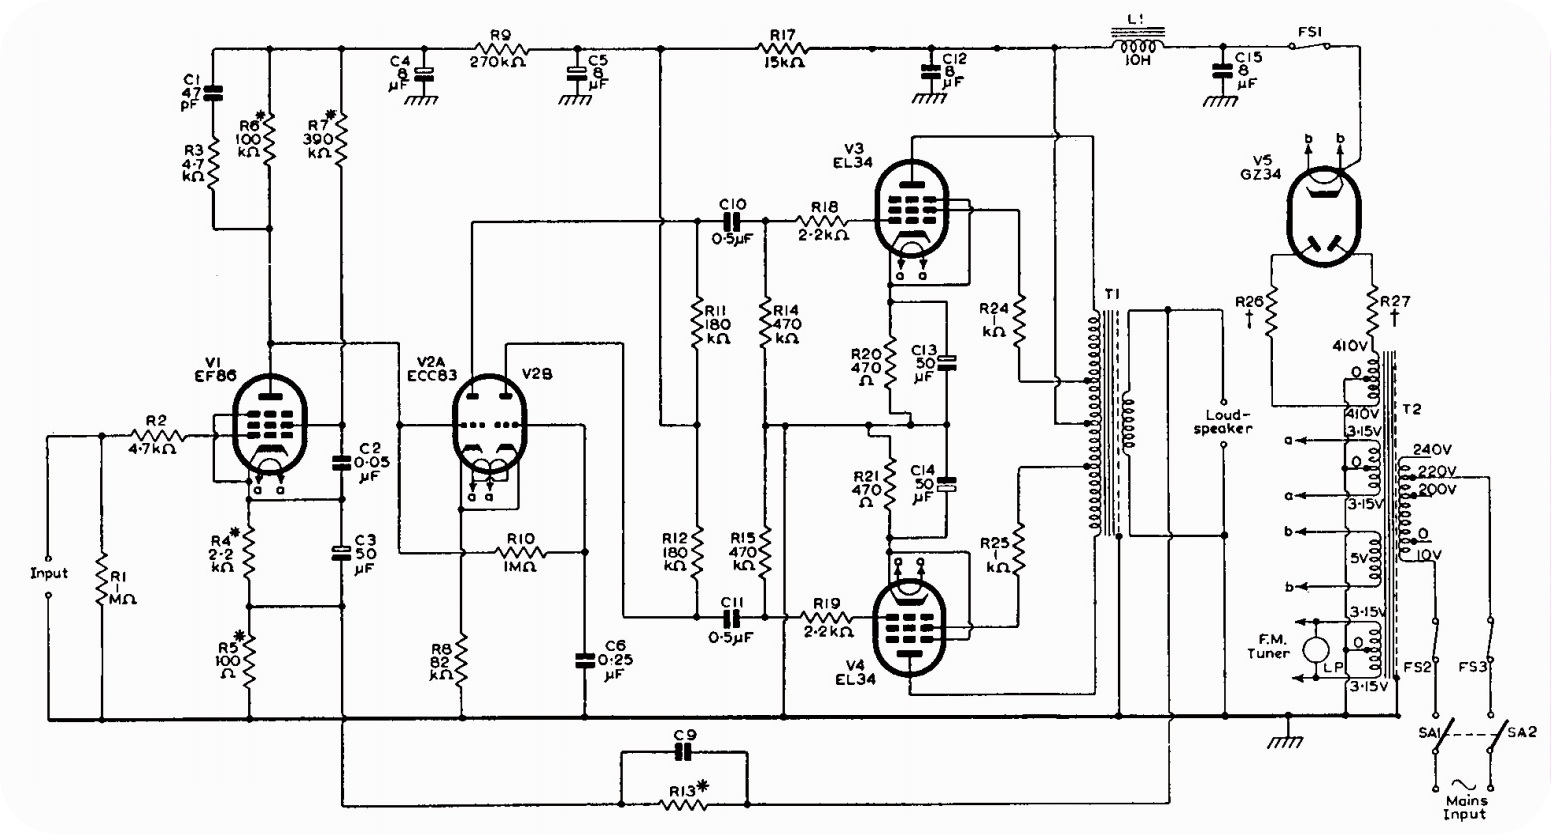 Ready Remote 24921 Wiring Diagram How To Read Electrical Control Diagrams Xcrs 500m 24 Images 1 Electronics Installation Manual At Cita Asia